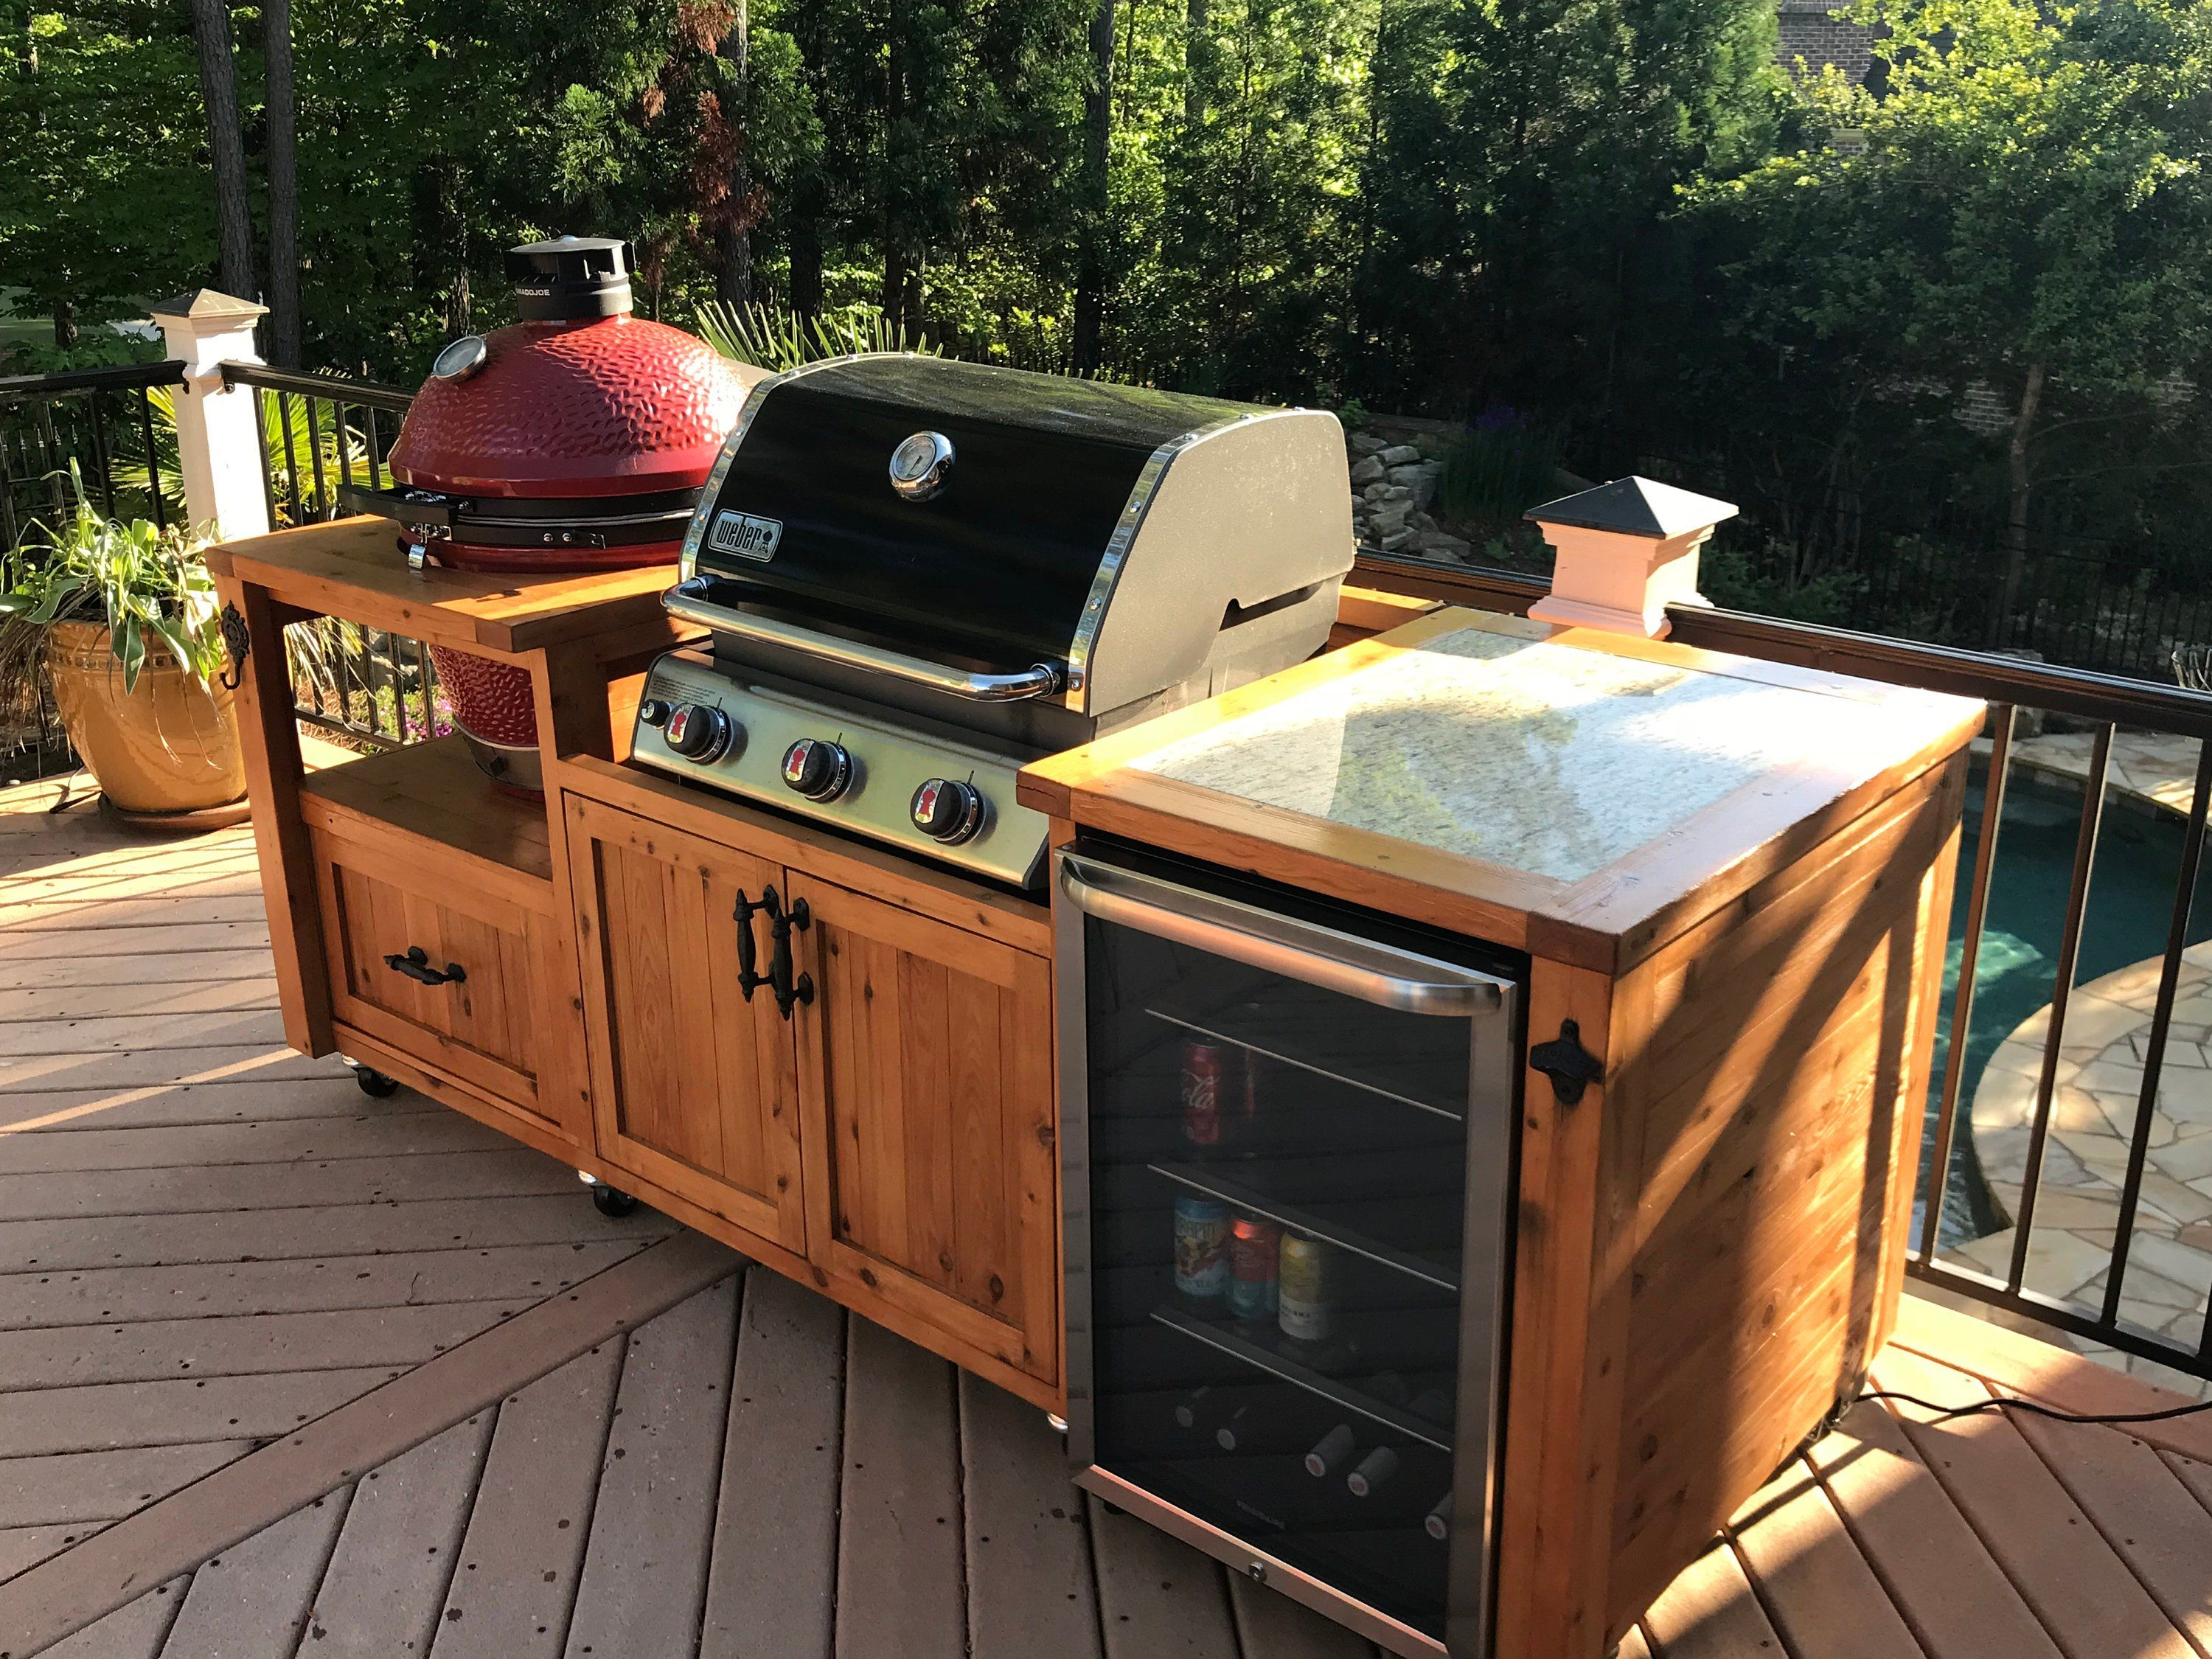 Outdoor Grill Kitchen Grill Cabinet Grill Table And Other Outdoor Patio Furniture Outdoor Kitchen Decor Kitchen Grill Diy Outdoor Kitchen